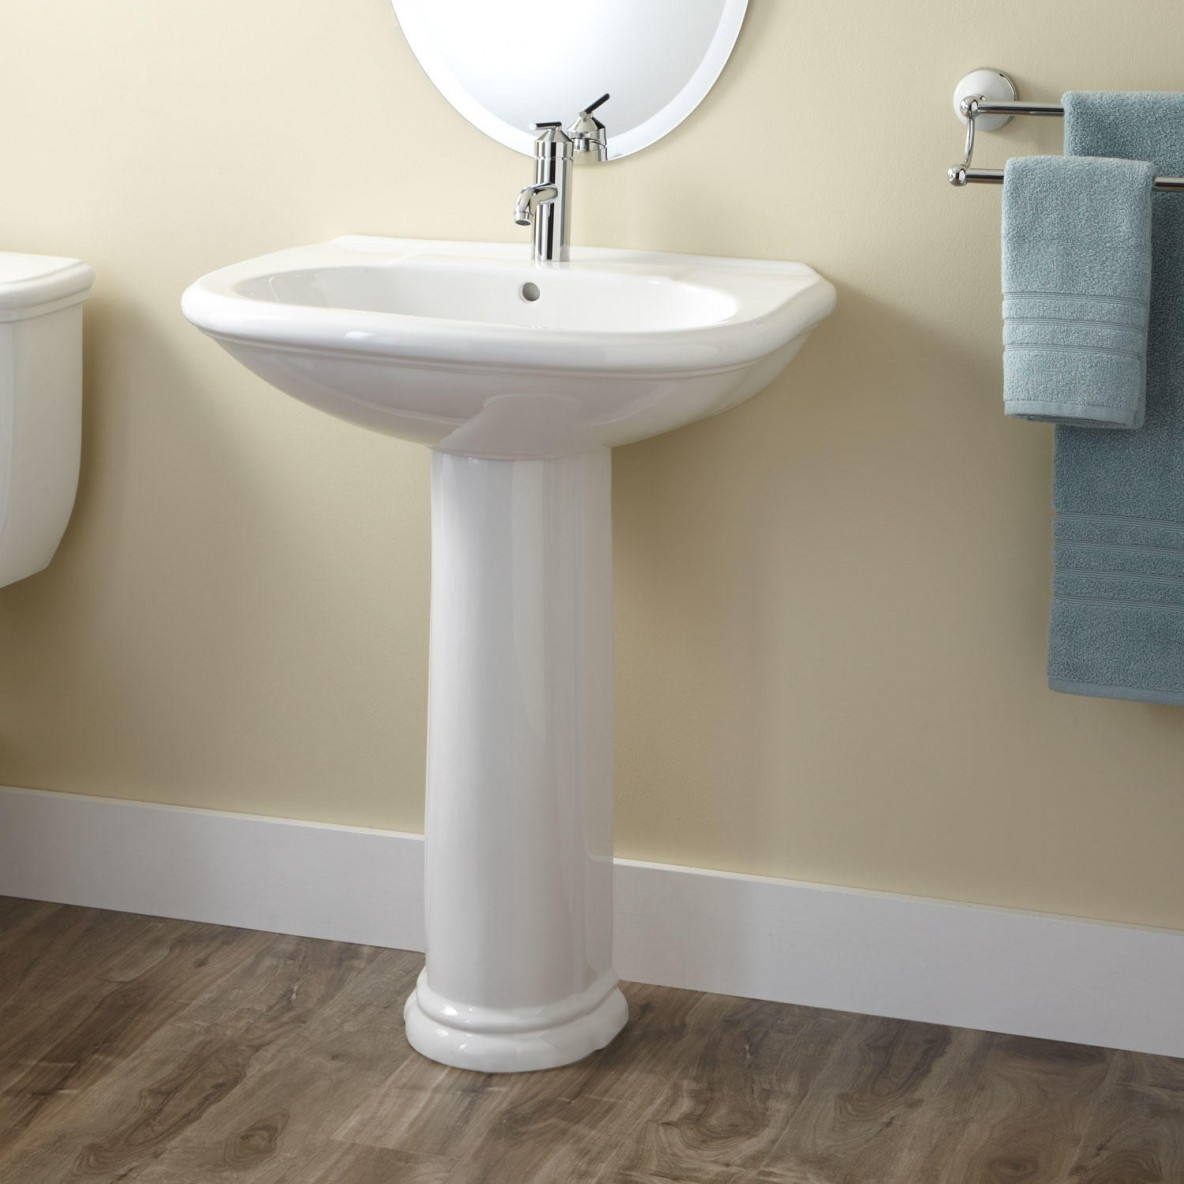 Pedestal Sink Refinishing - San Diego